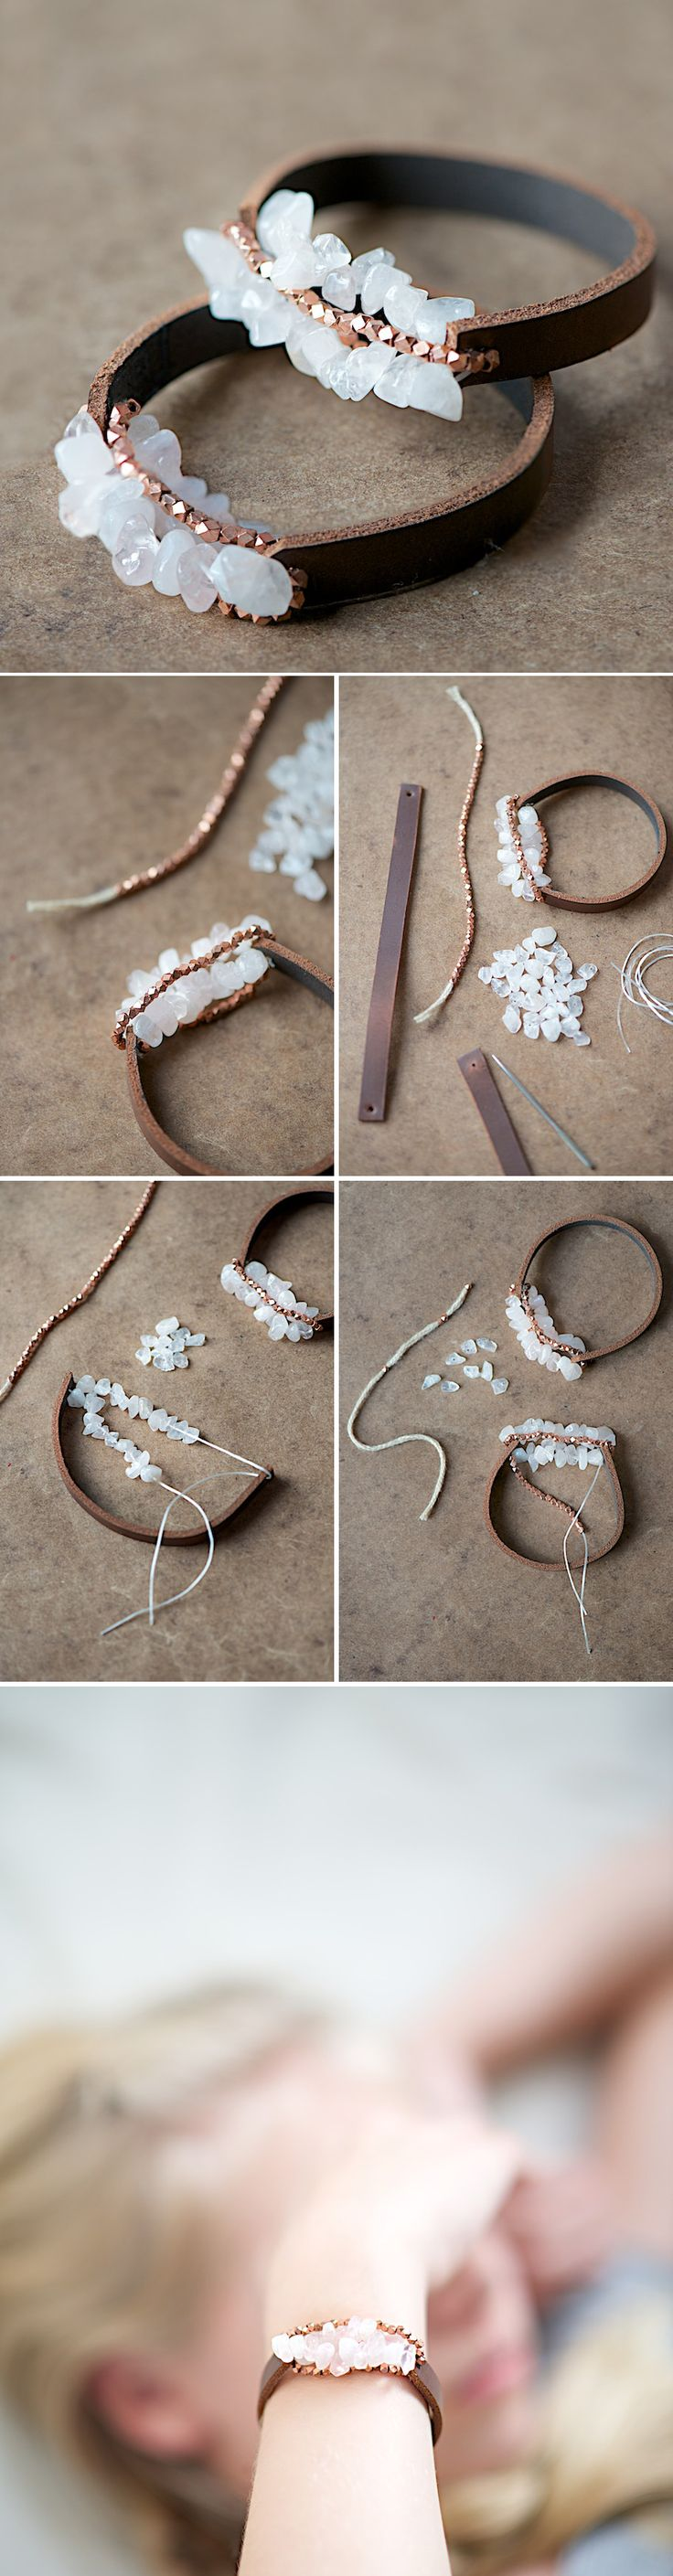 Leather Bracelet Tutorial//